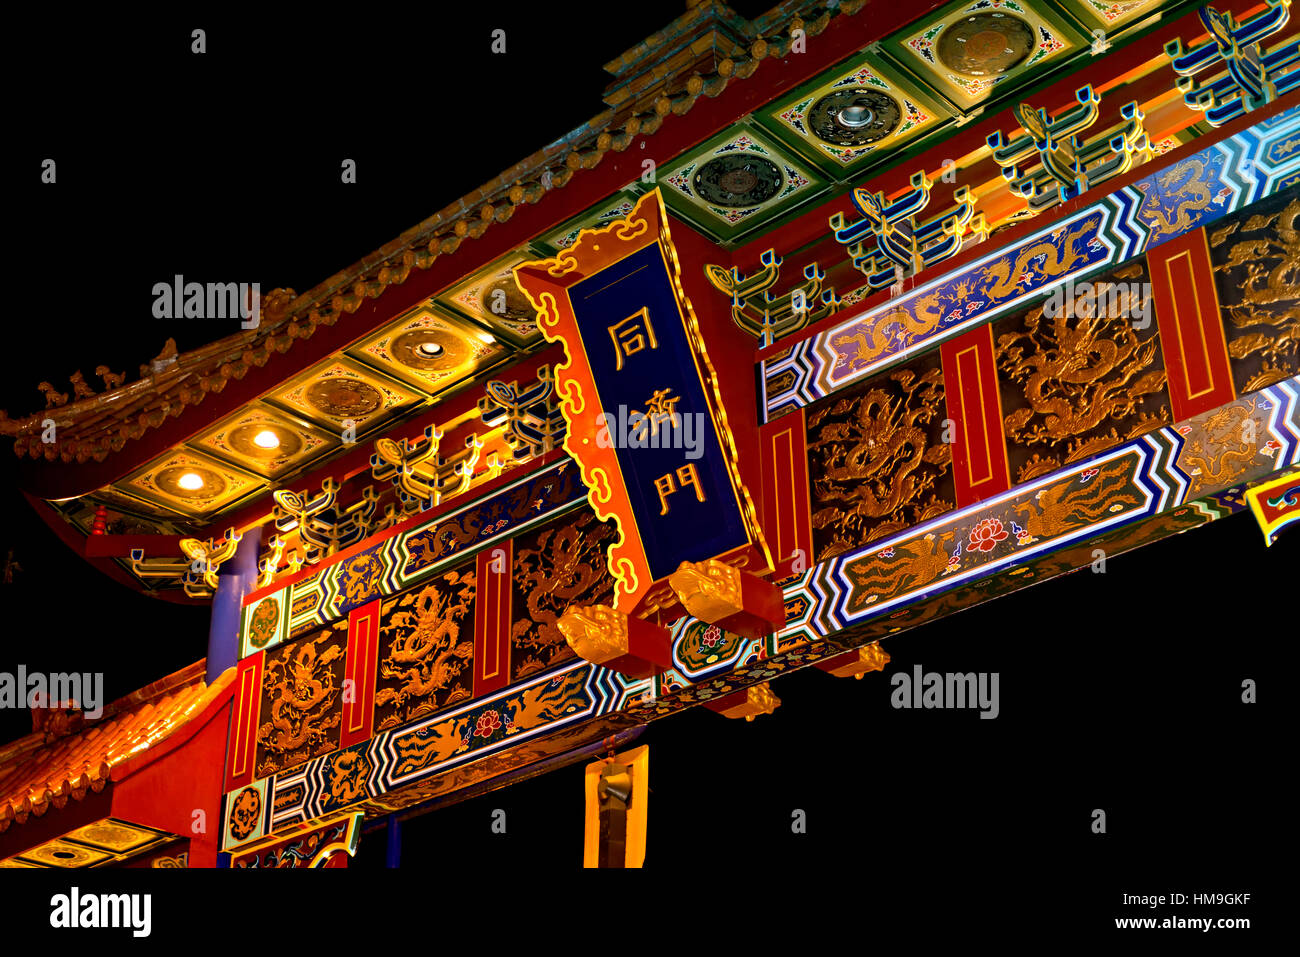 Vancouver Island - Gates of Harmonious Interest in China town at night, Vancouver Island, BC, Canada - Stock Image